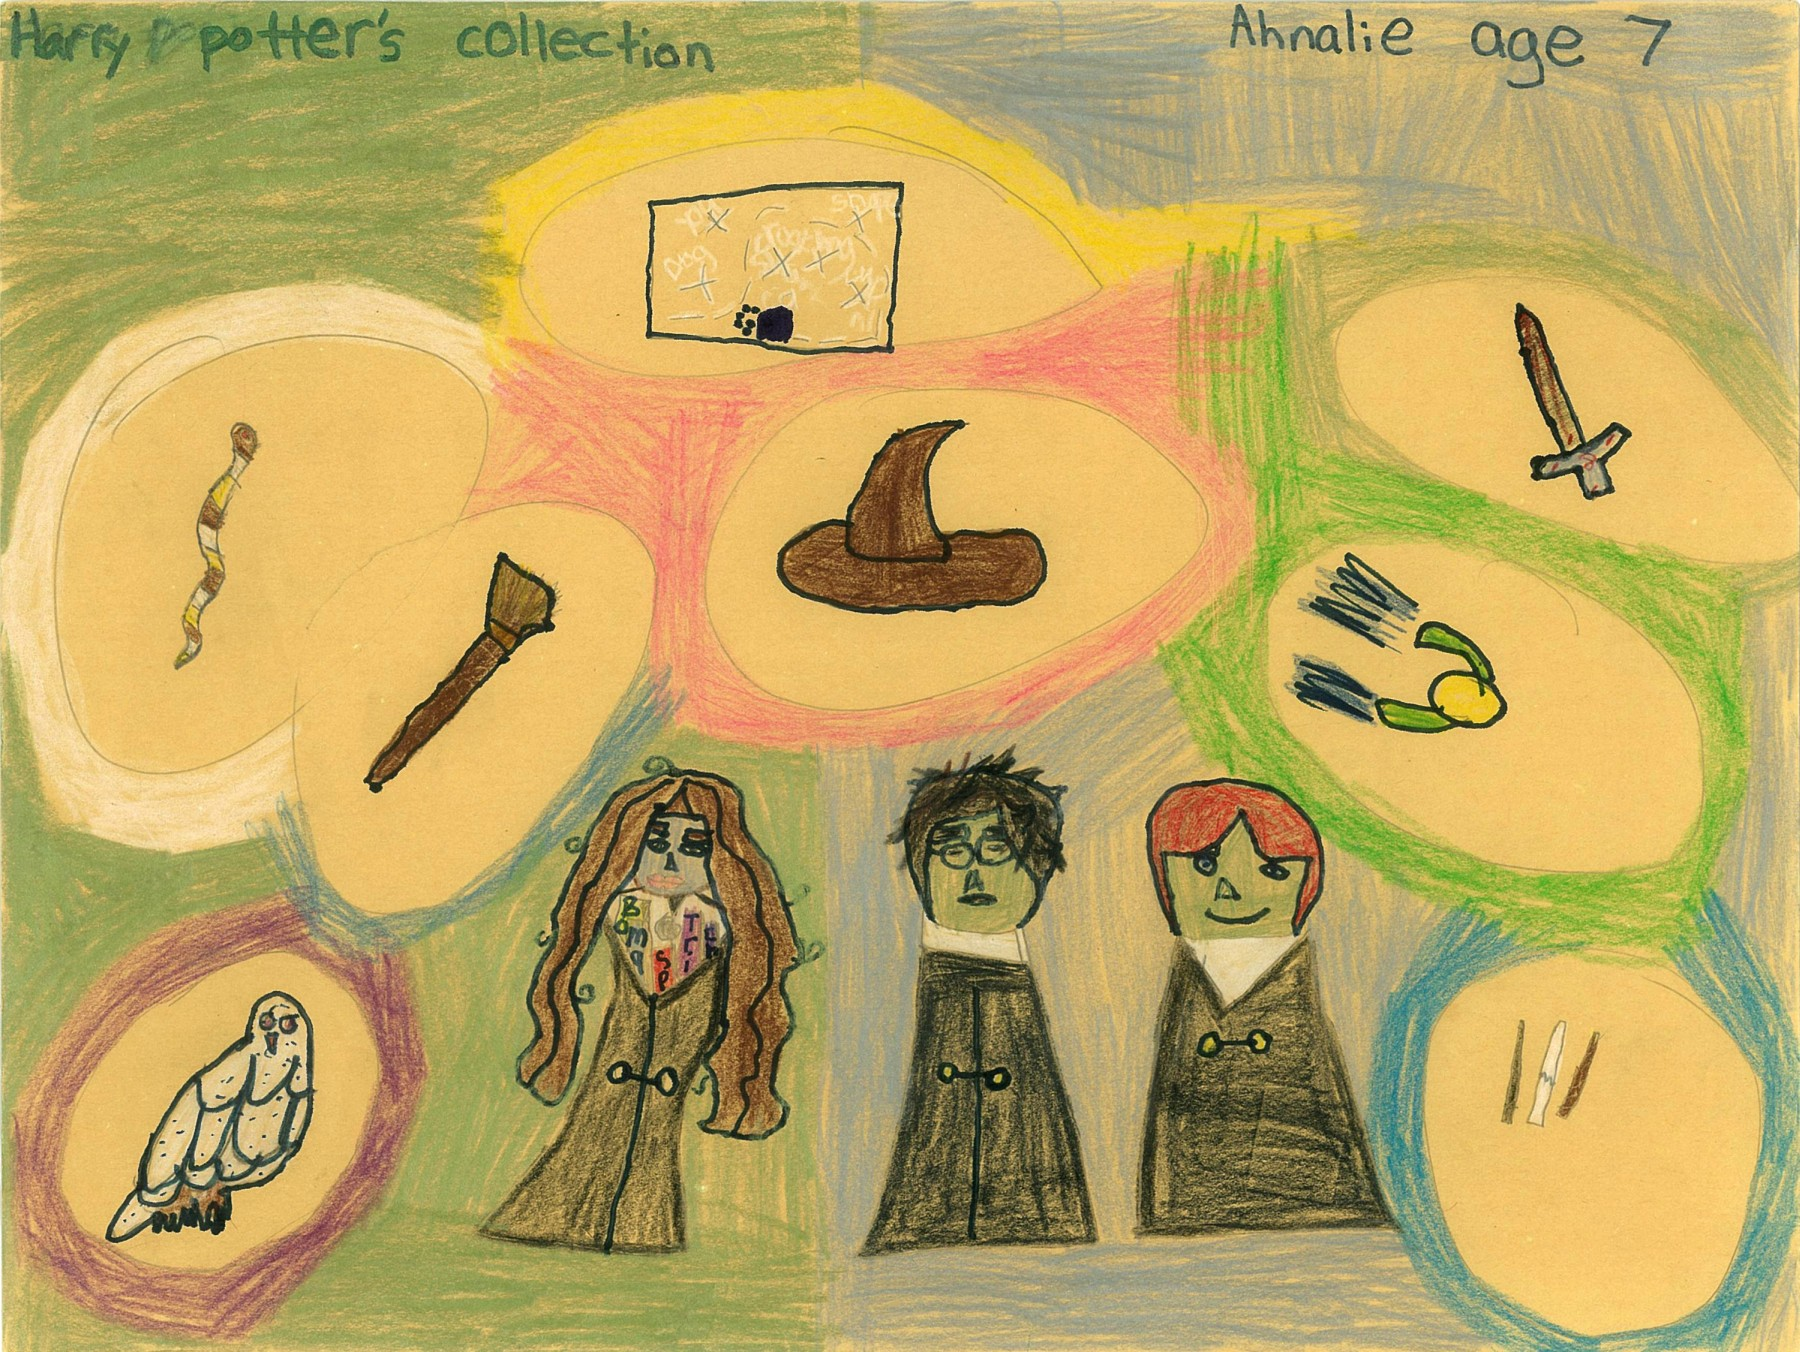 Harry Potter's Collection, by Ahnalie DeBruyn - Age 7